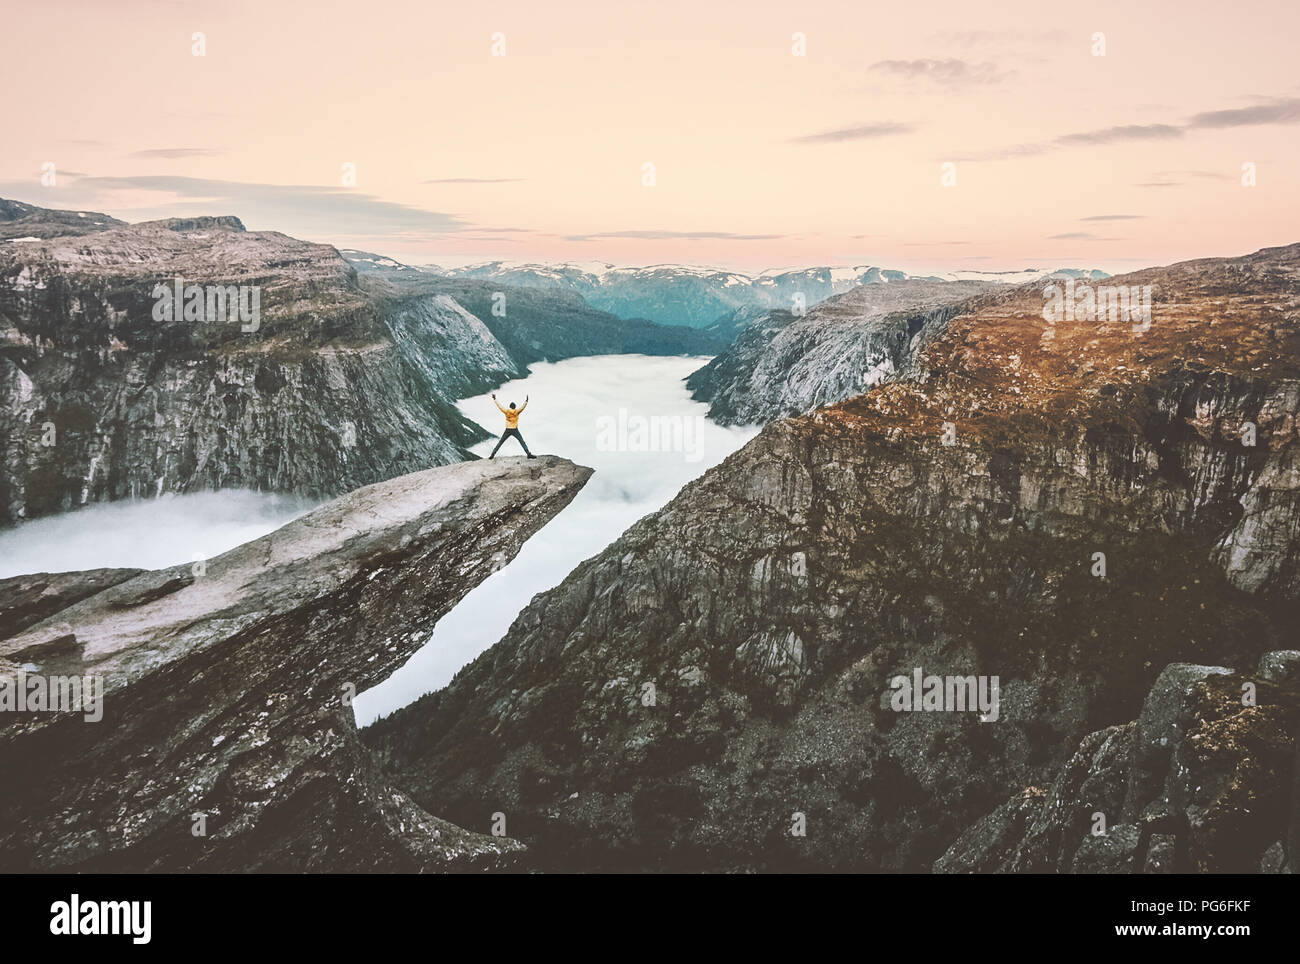 Man jumping on the edge of Trolltunga cliff  traveling in Norway adventure extreme trip vacations lifestyle tourism outdoor rocky mountains over cloud - Stock Image